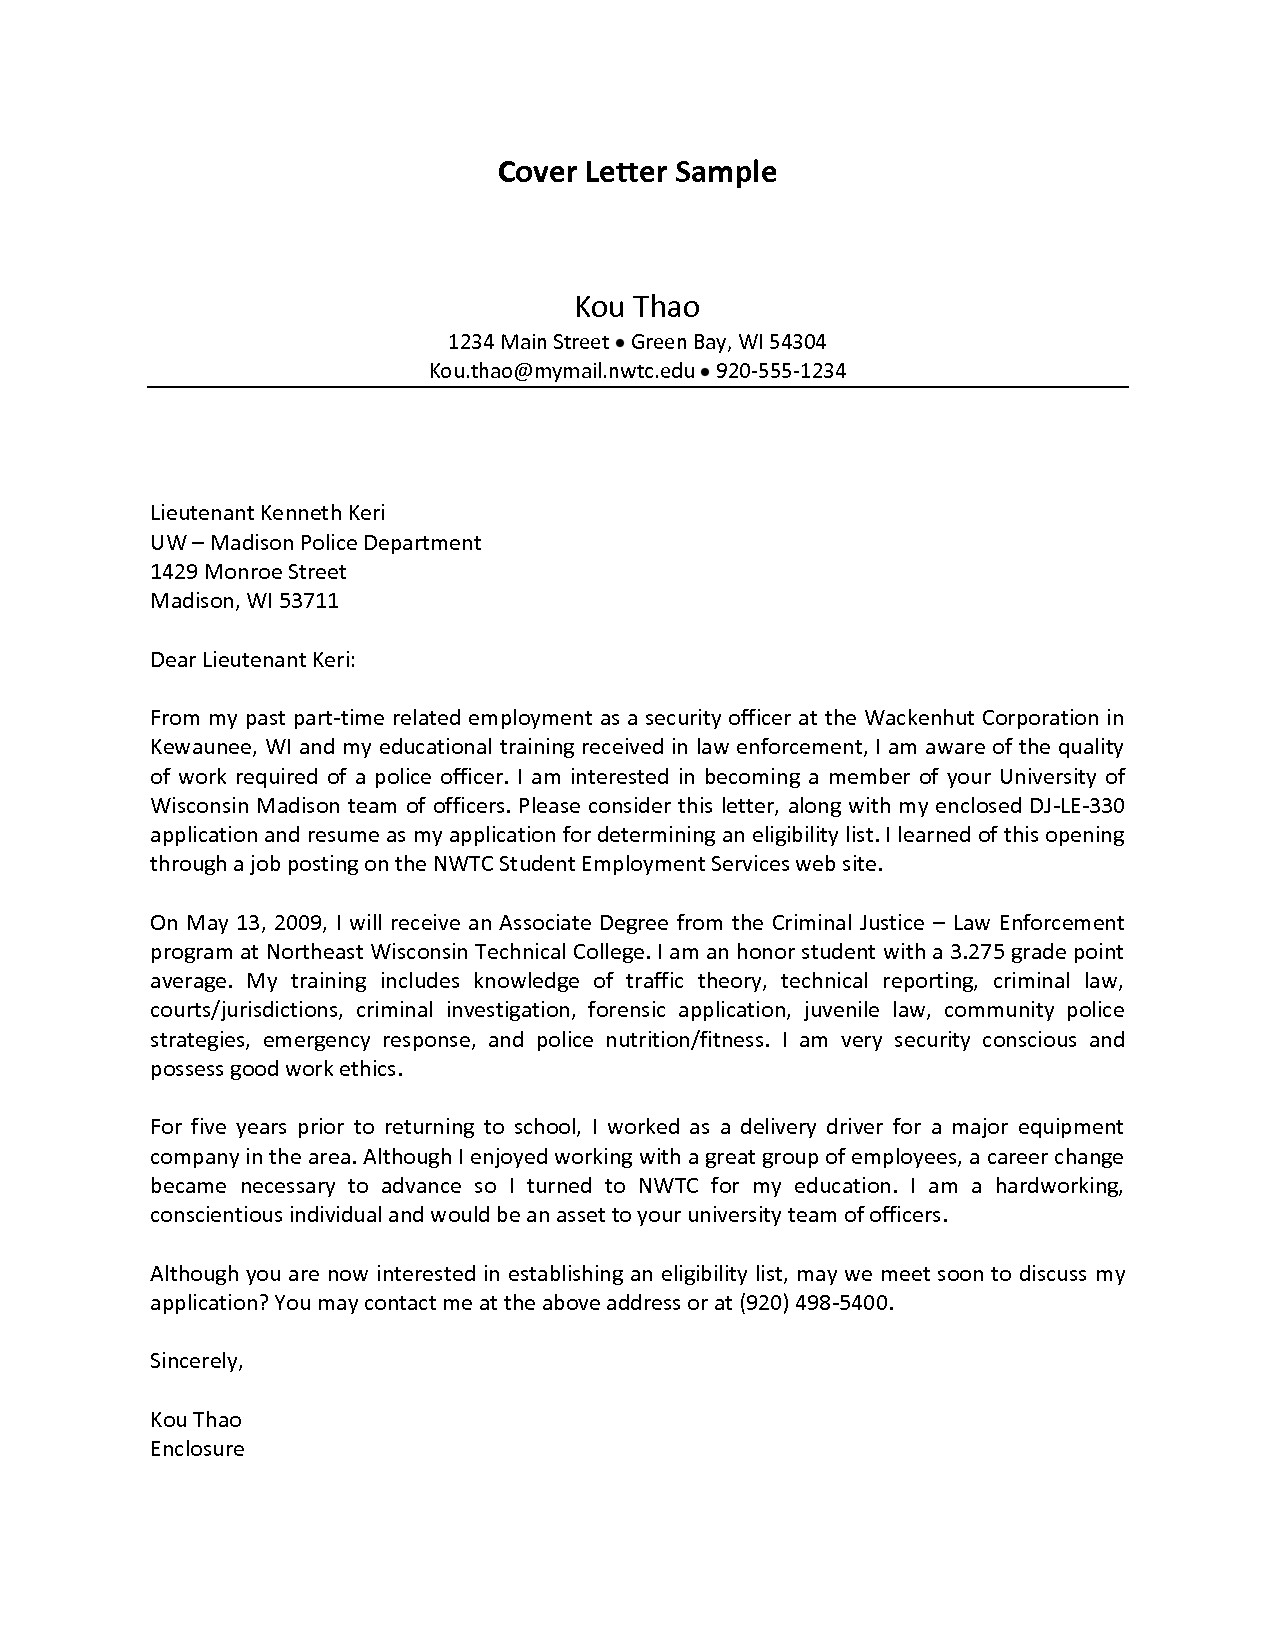 Senior Project Thesis Statement What Is The Difference Between A Thesis And A Dissertat Cover Letter For Resume Career Change Cover Letter Cover Letter Sample